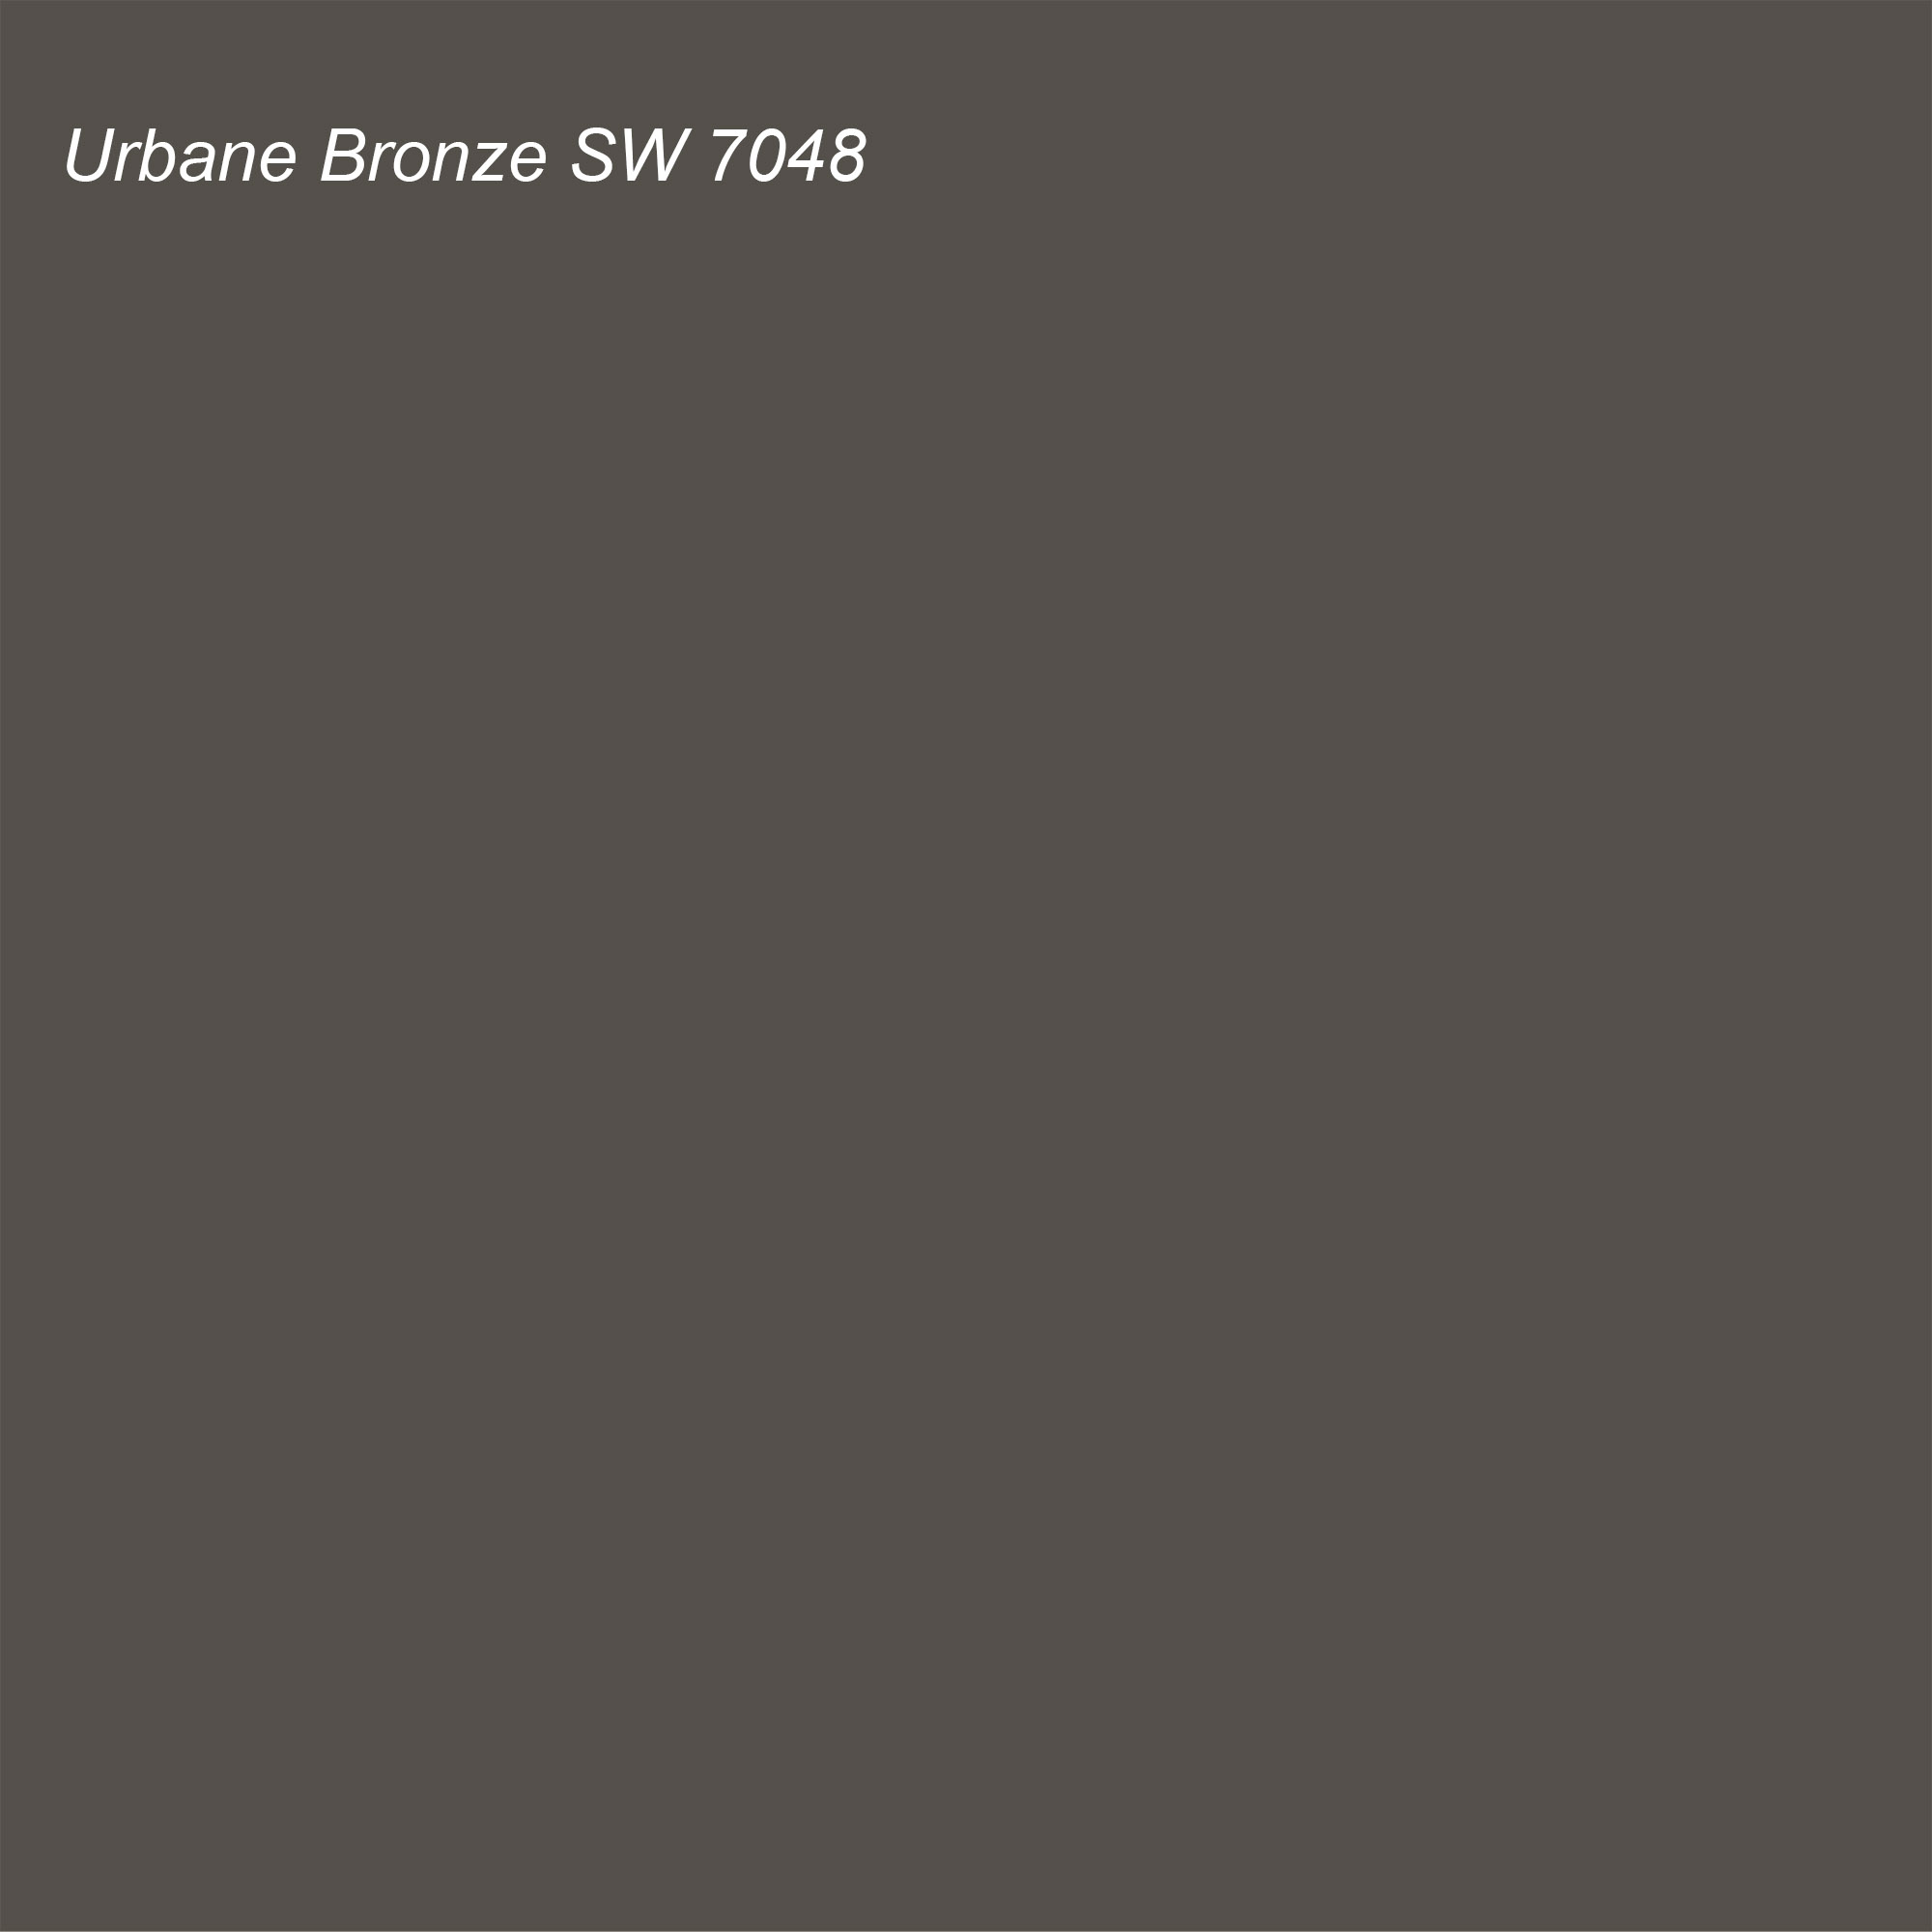 Sherwin Williams 2021 Color of the Year Urbane Bronze SW 7048